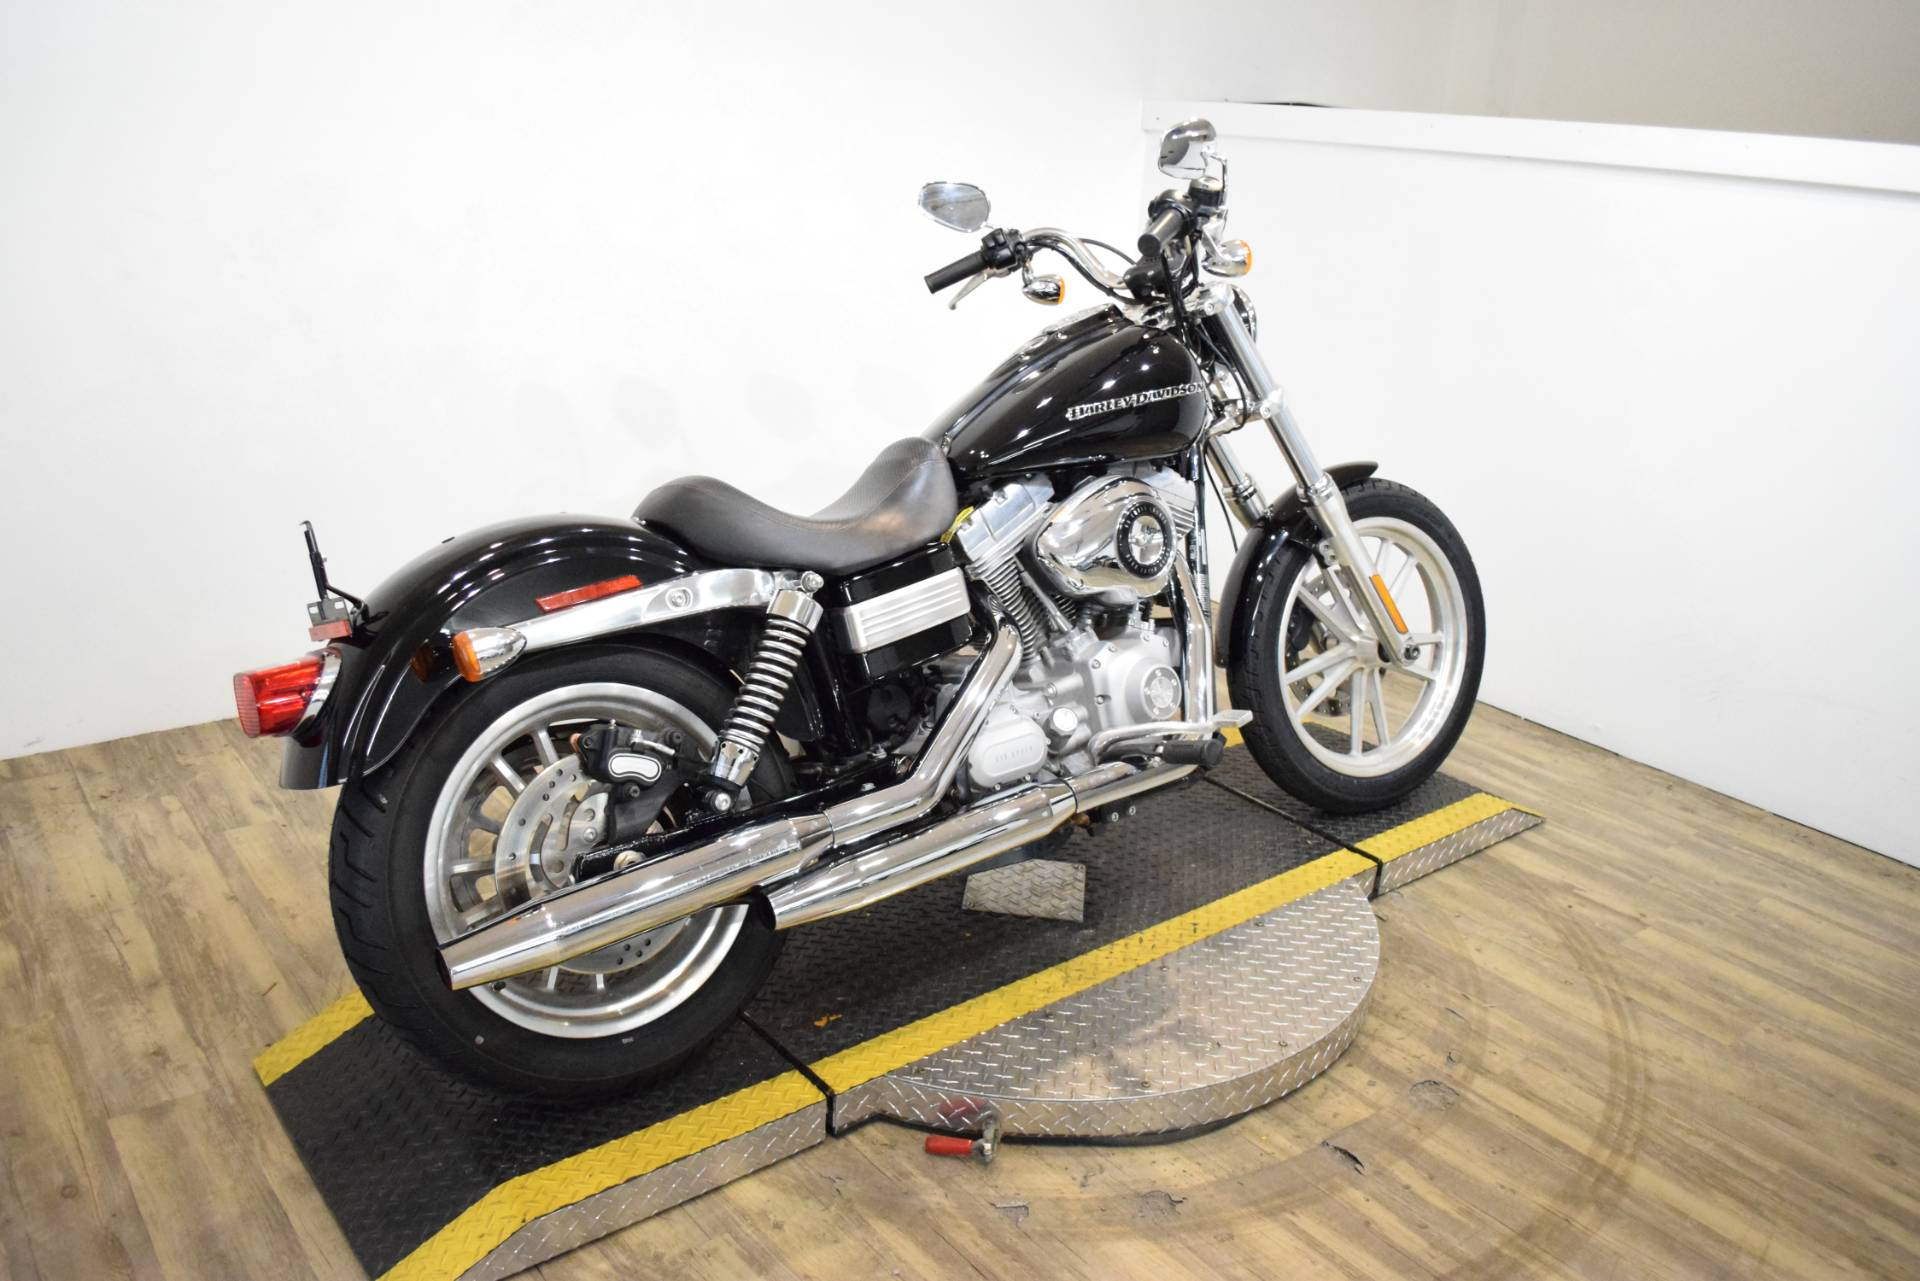 2009 Harley-Davidson Dyna Super Glide in Wauconda, Illinois - Photo 10